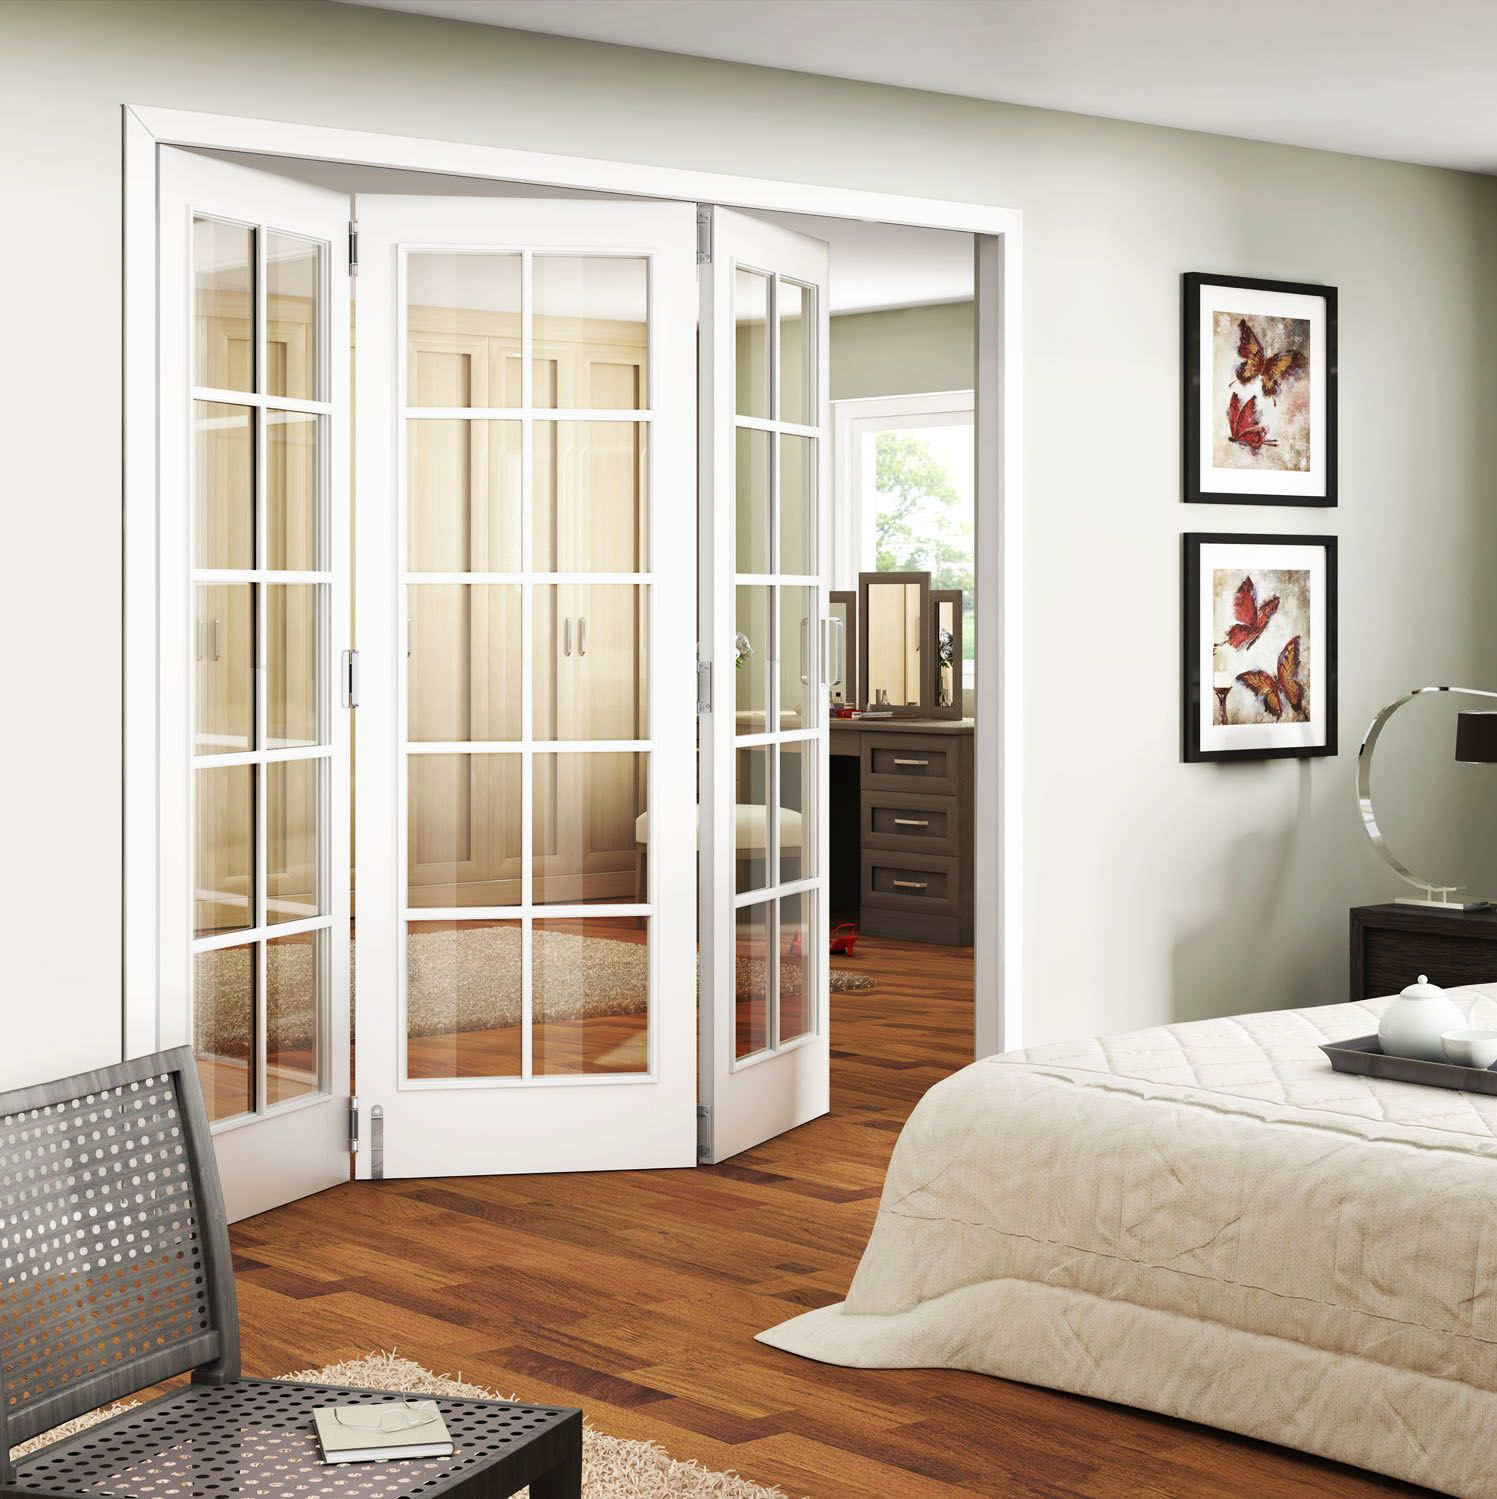 Image result for sliding wall partition glass french